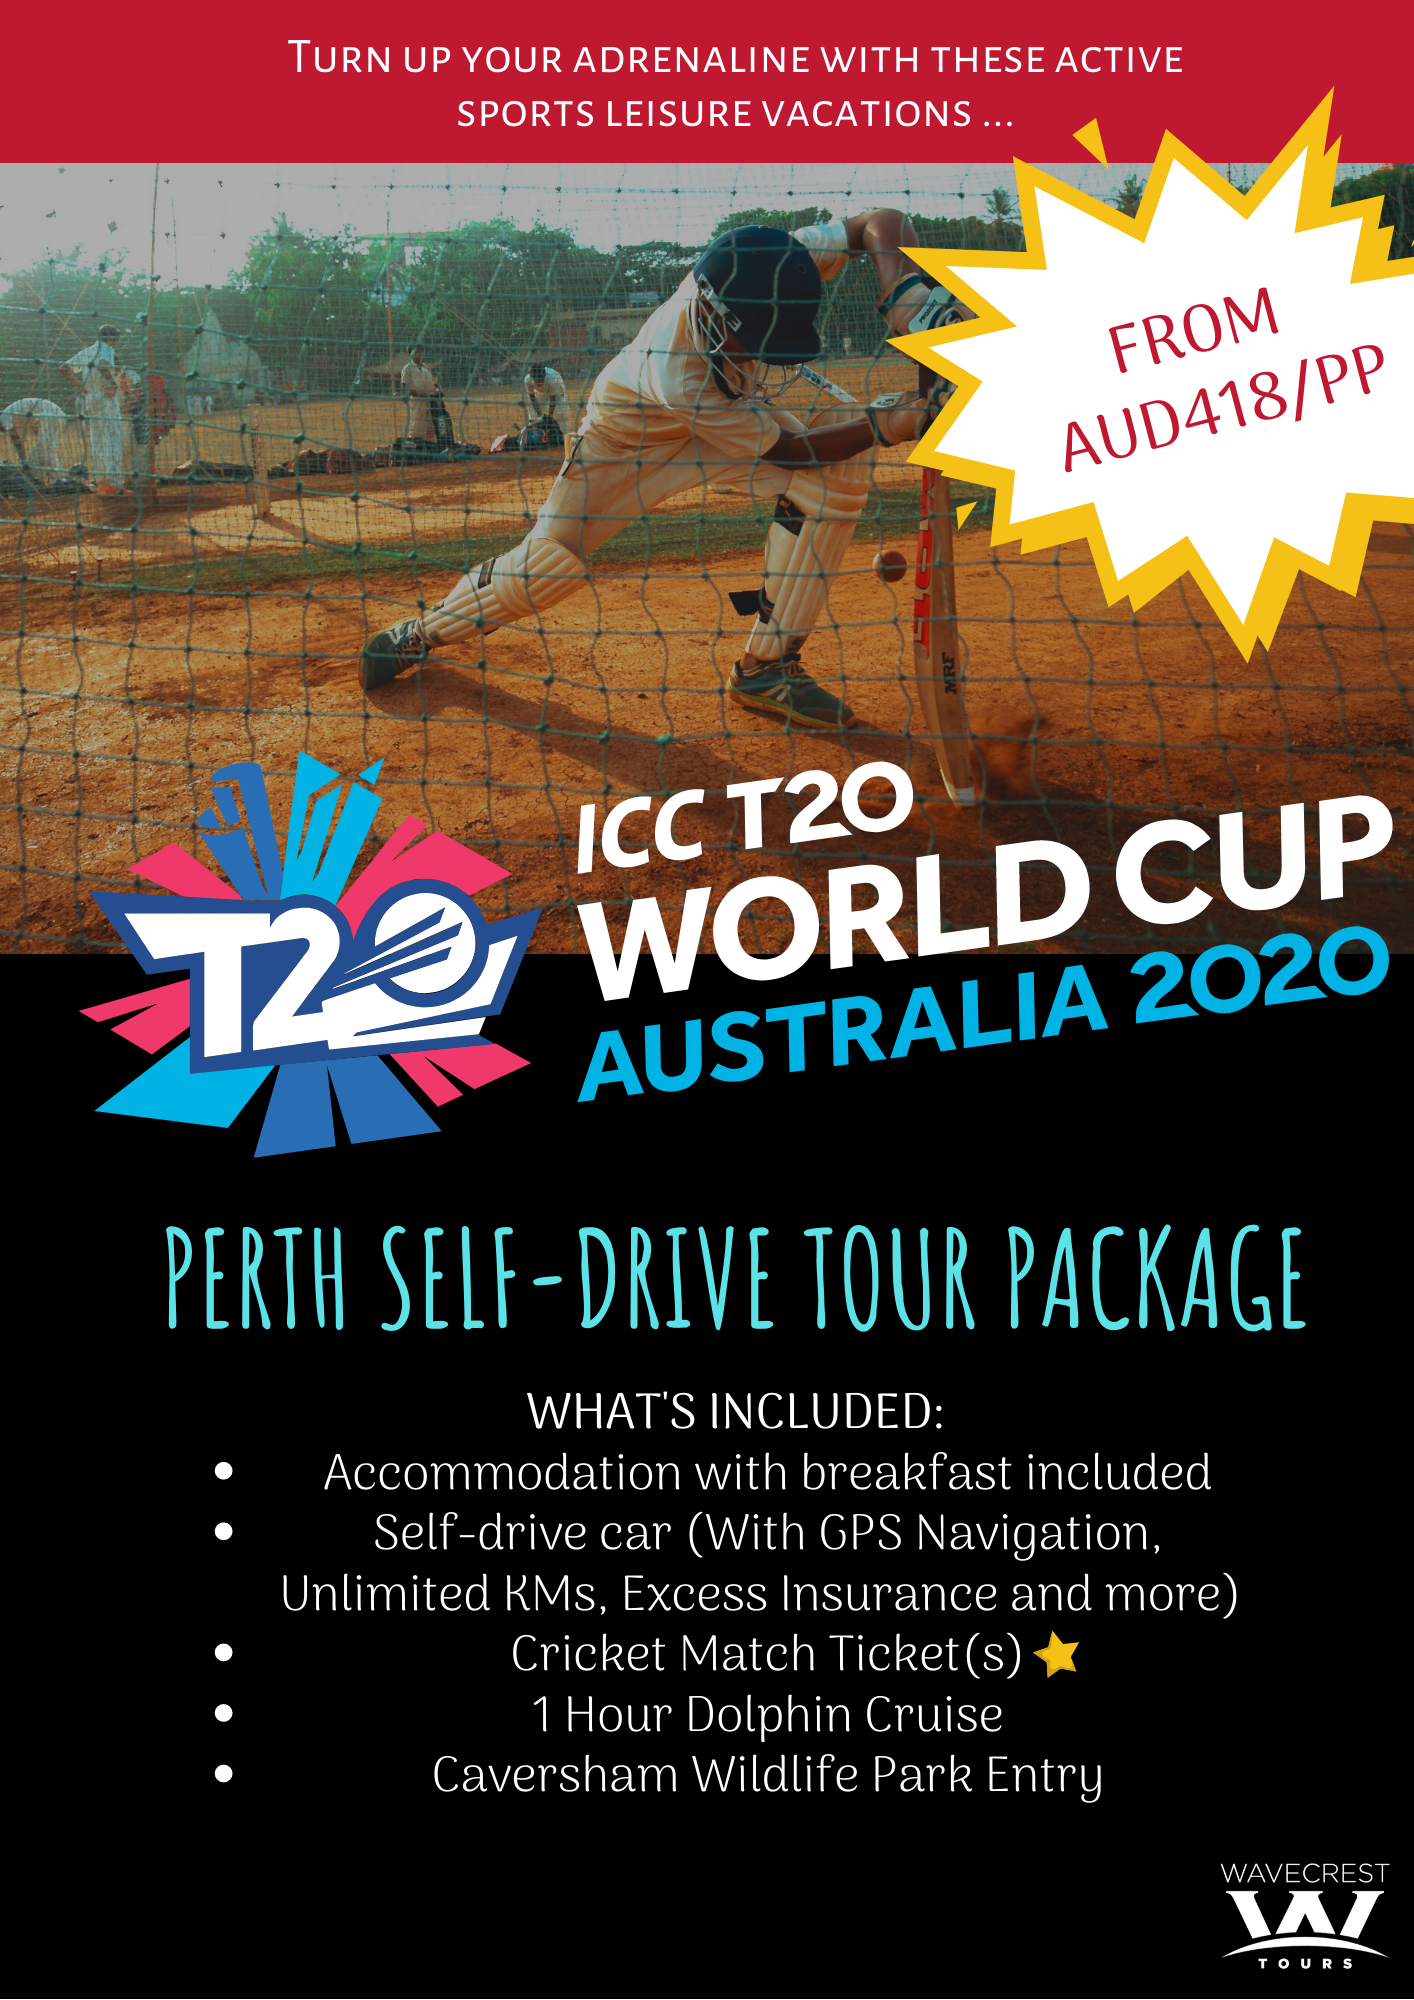 ICCT20 Perth Cricket Tour Package